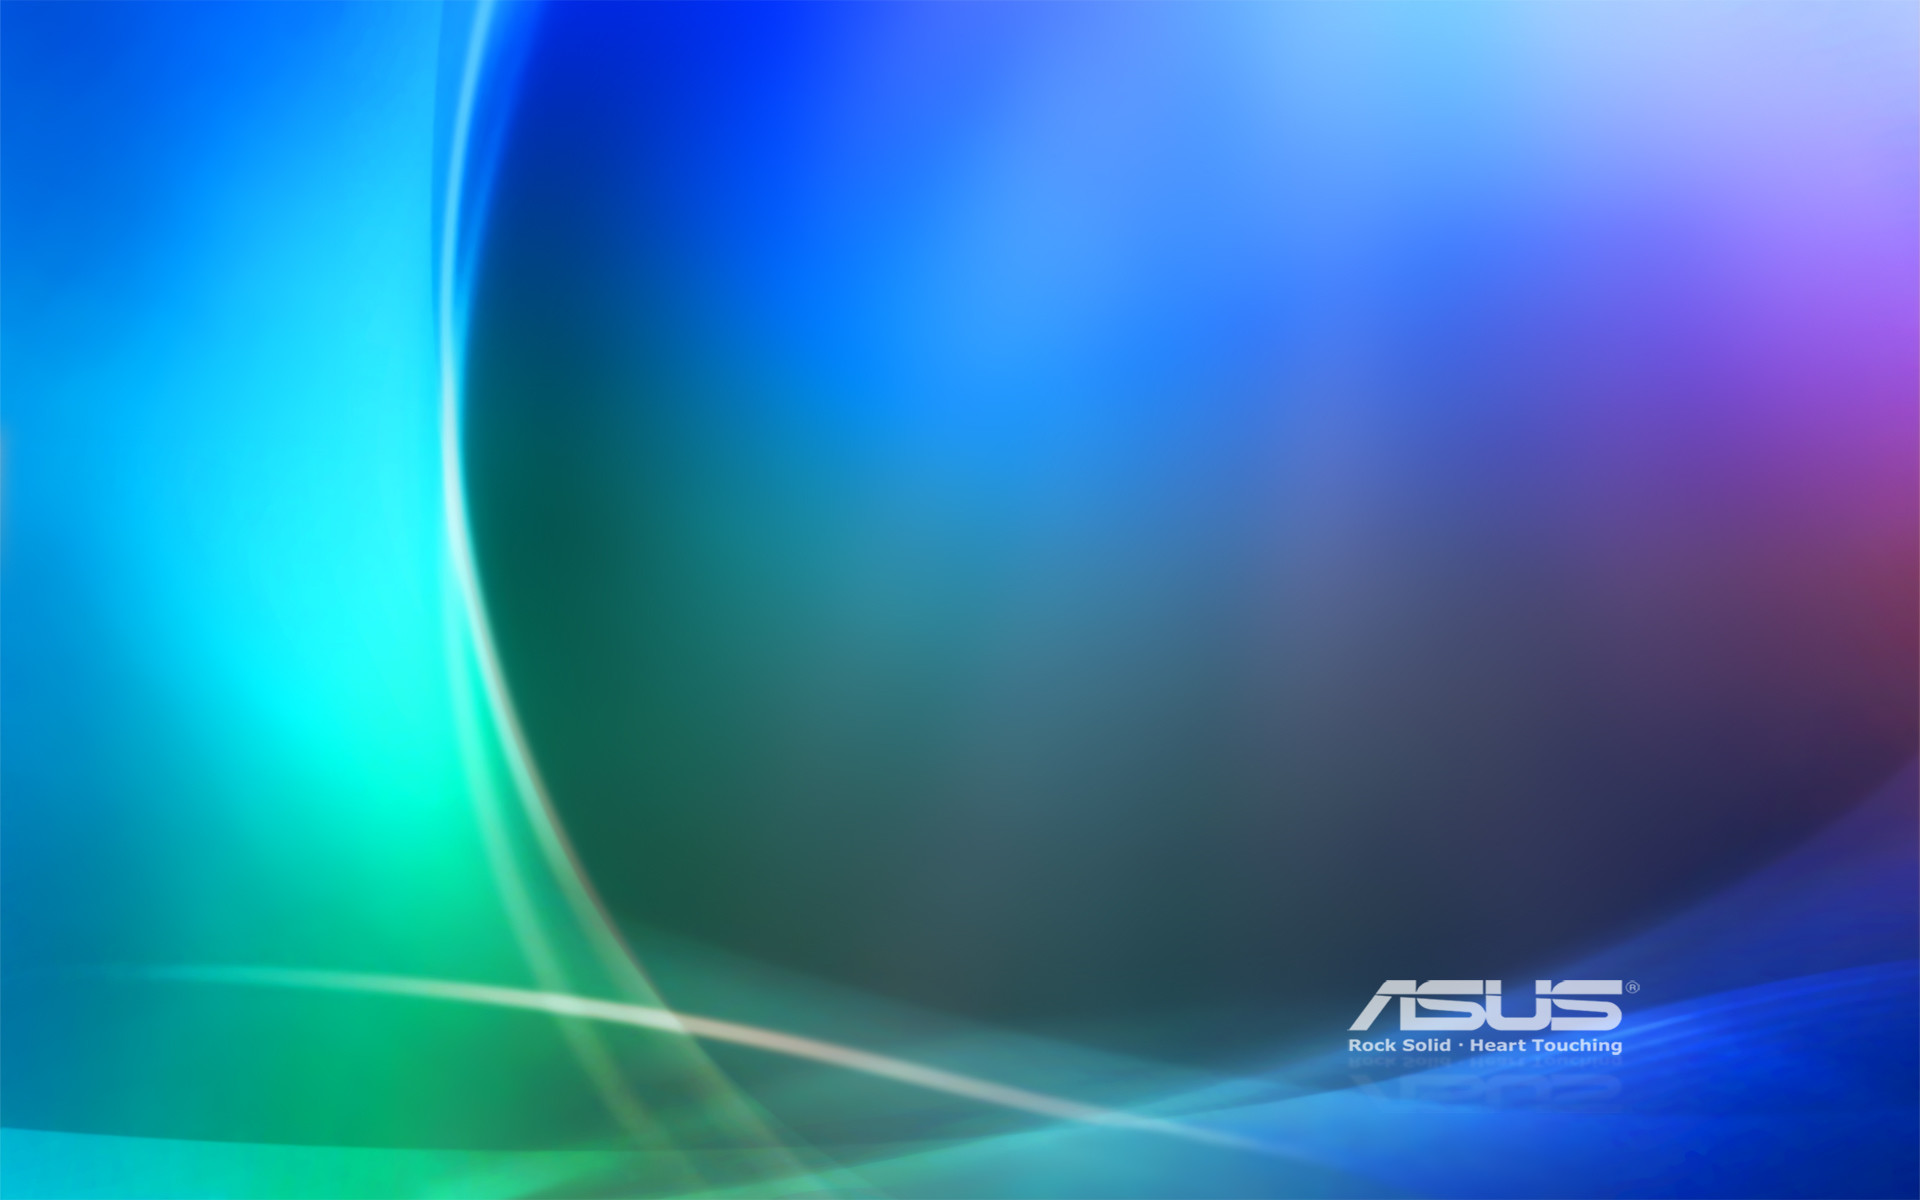 … Ultra HD Asus Wallpapers 4K (px)